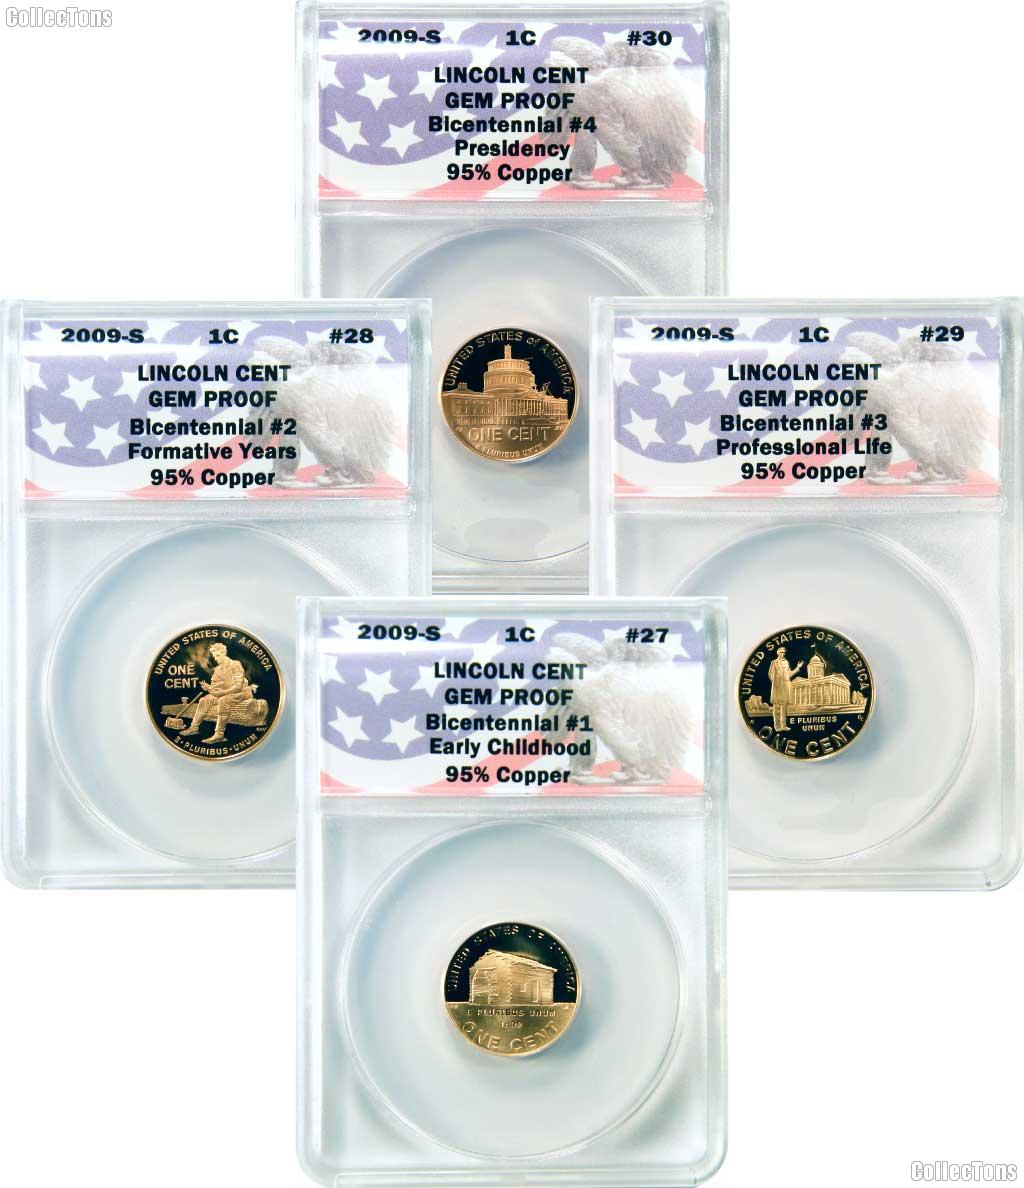 CollecTons Keepers #27- #30: 2009 Lincoln Bicentennial  Complete Proof Cent Collection Certified in Exclusive ANACS GEM Proof Holder